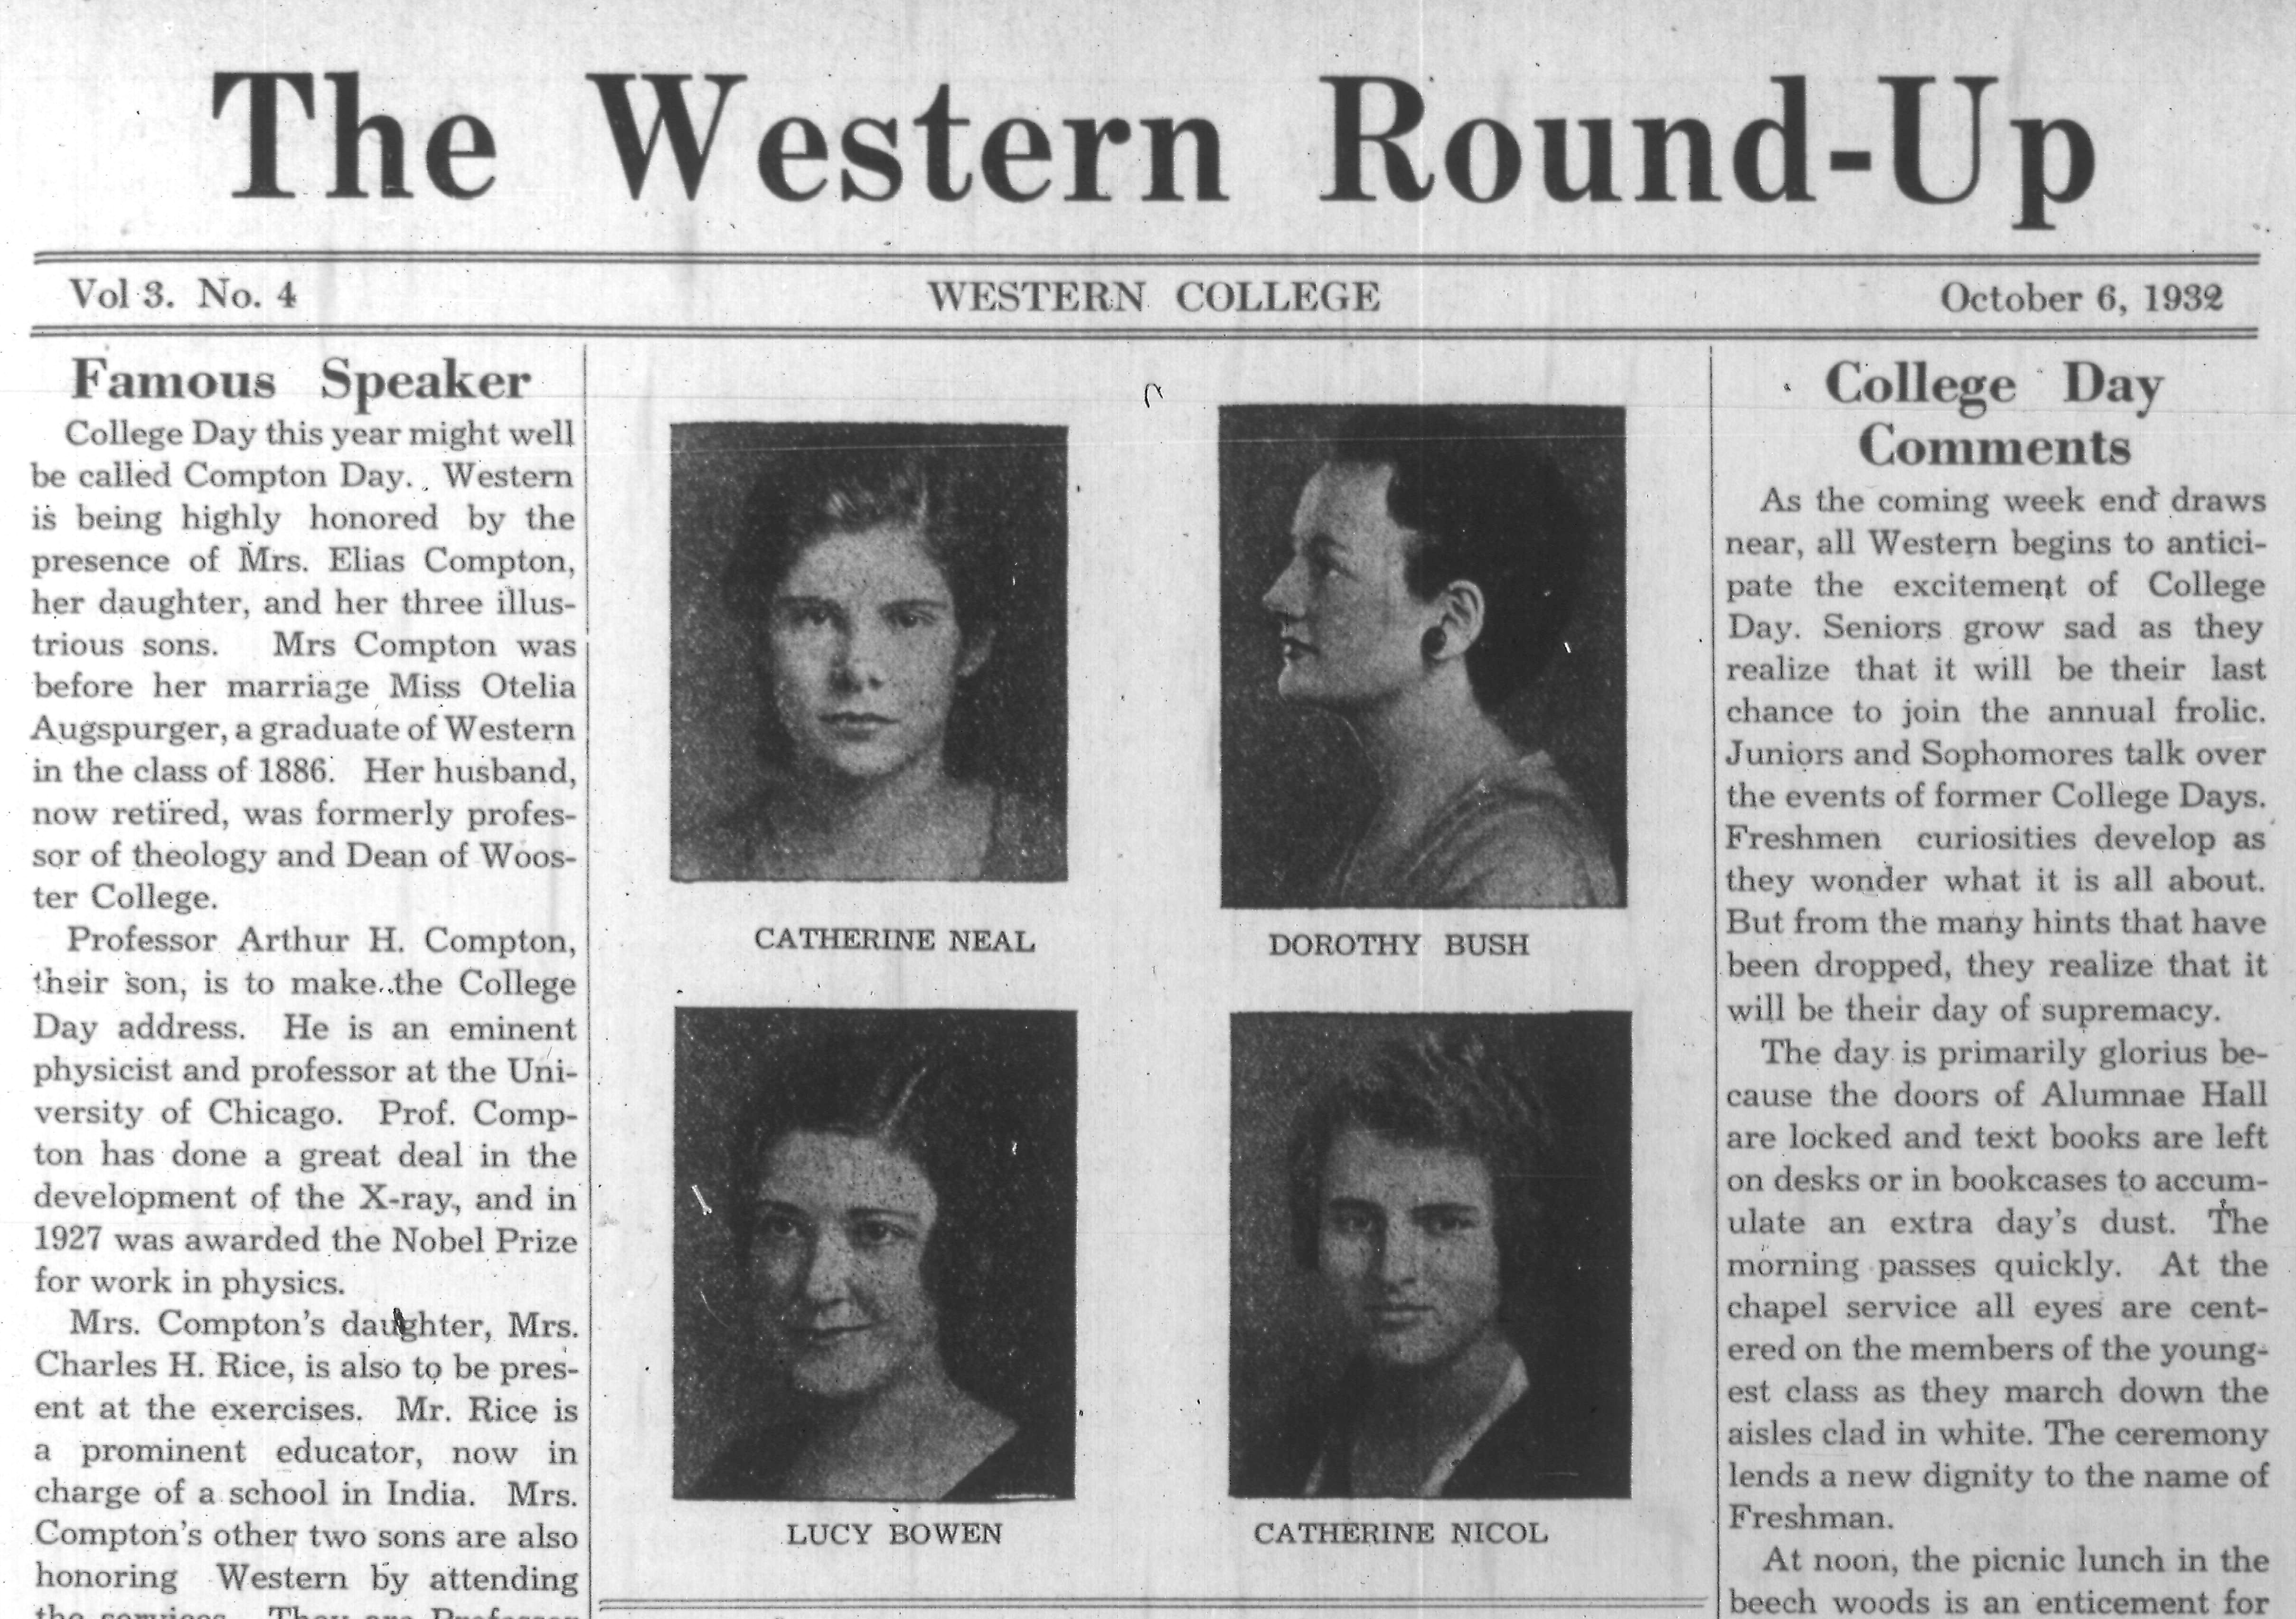 Front page of Western Round-Up newspaper